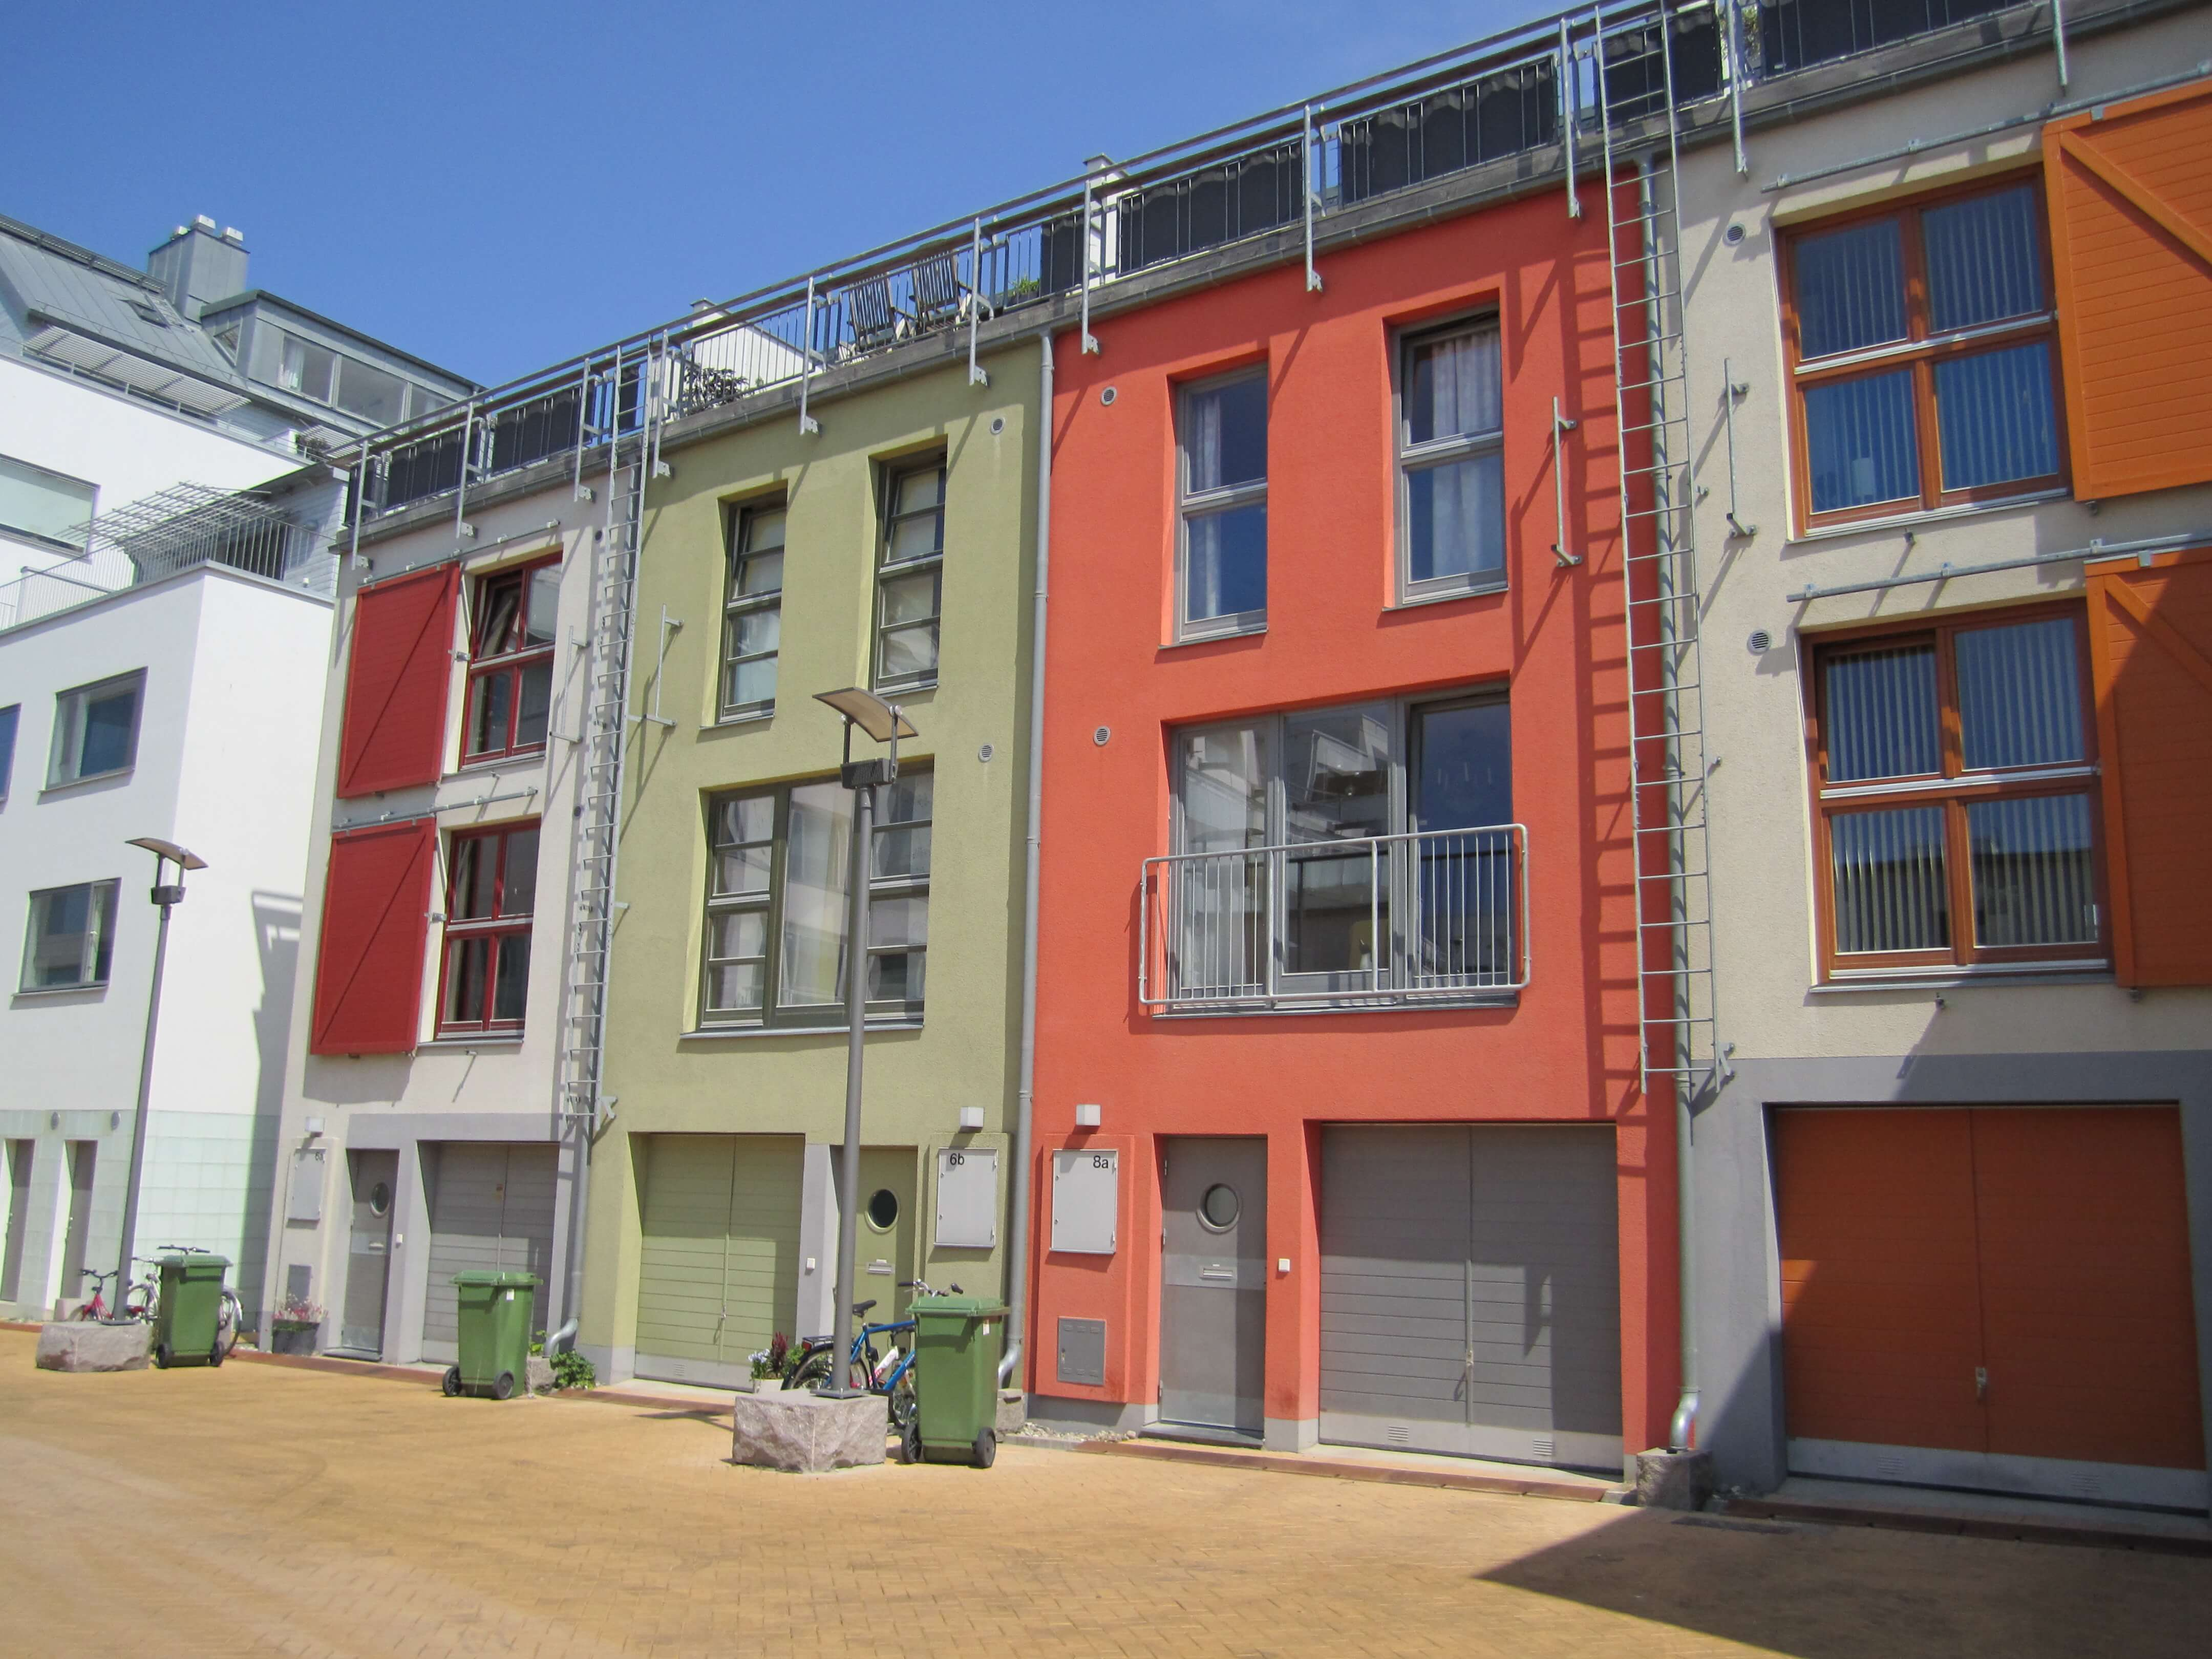 Connected colorful townhomes